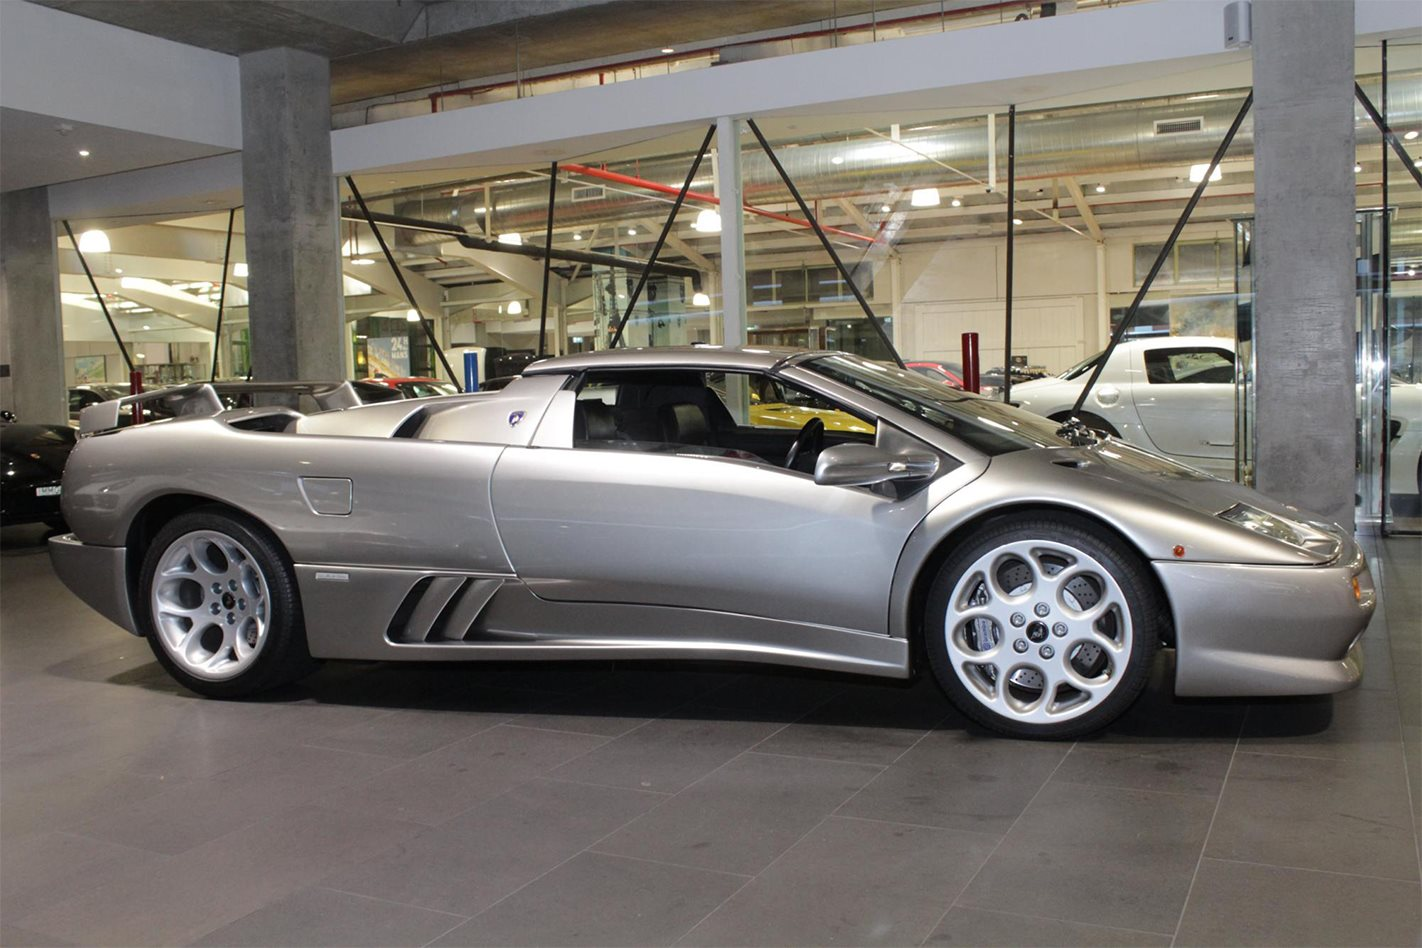 Super Rare Lamborghini Diablo For Sale In Australia Motor